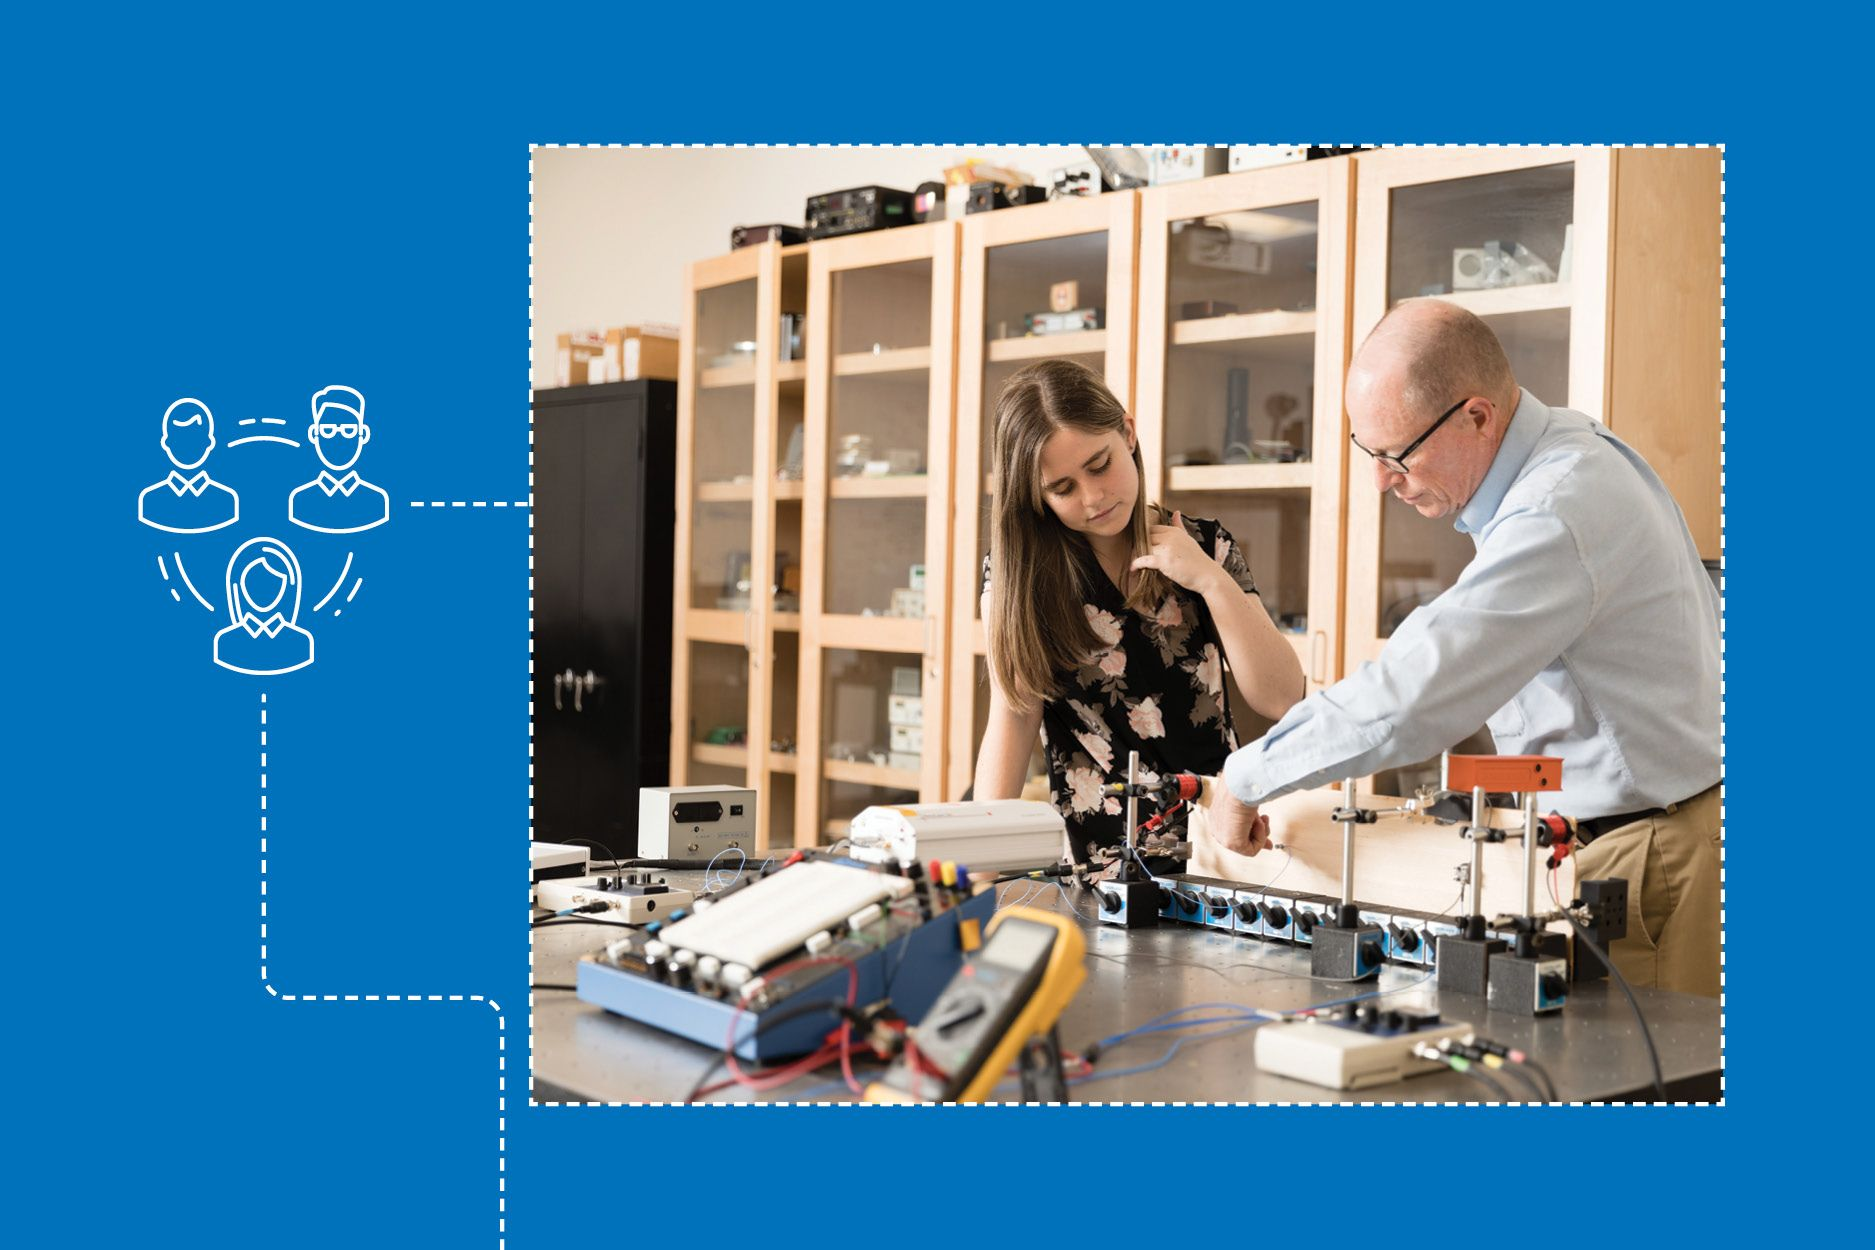 Lauren Neldner and physics professor Thom Moore conduct research in a physics lab.